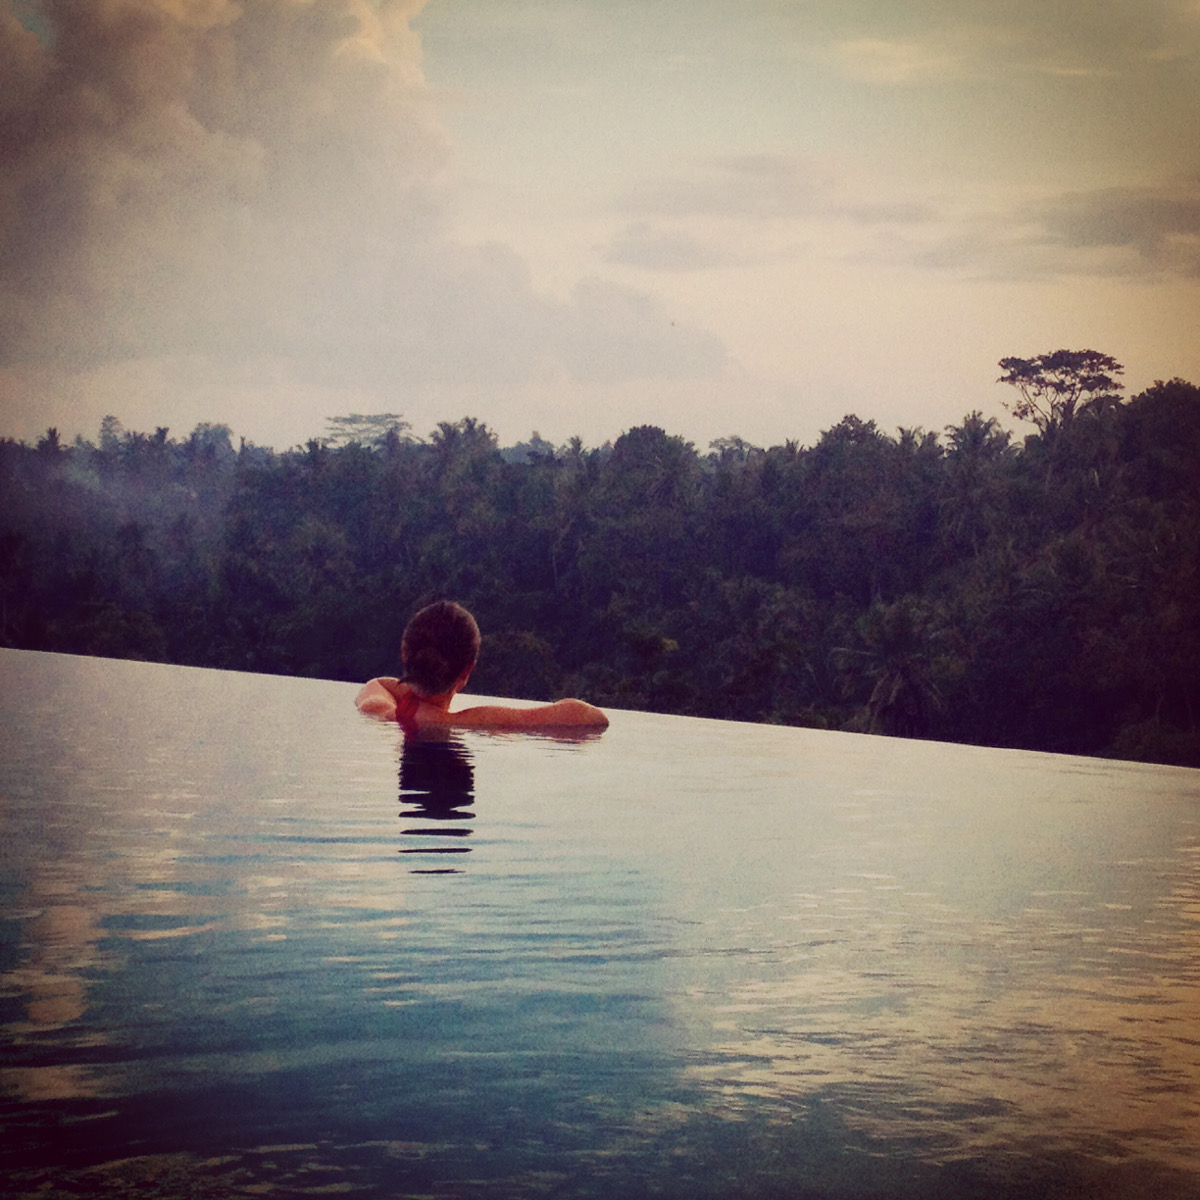 Bisma 8 infinity pool Ubud Double-Barrelled Travel